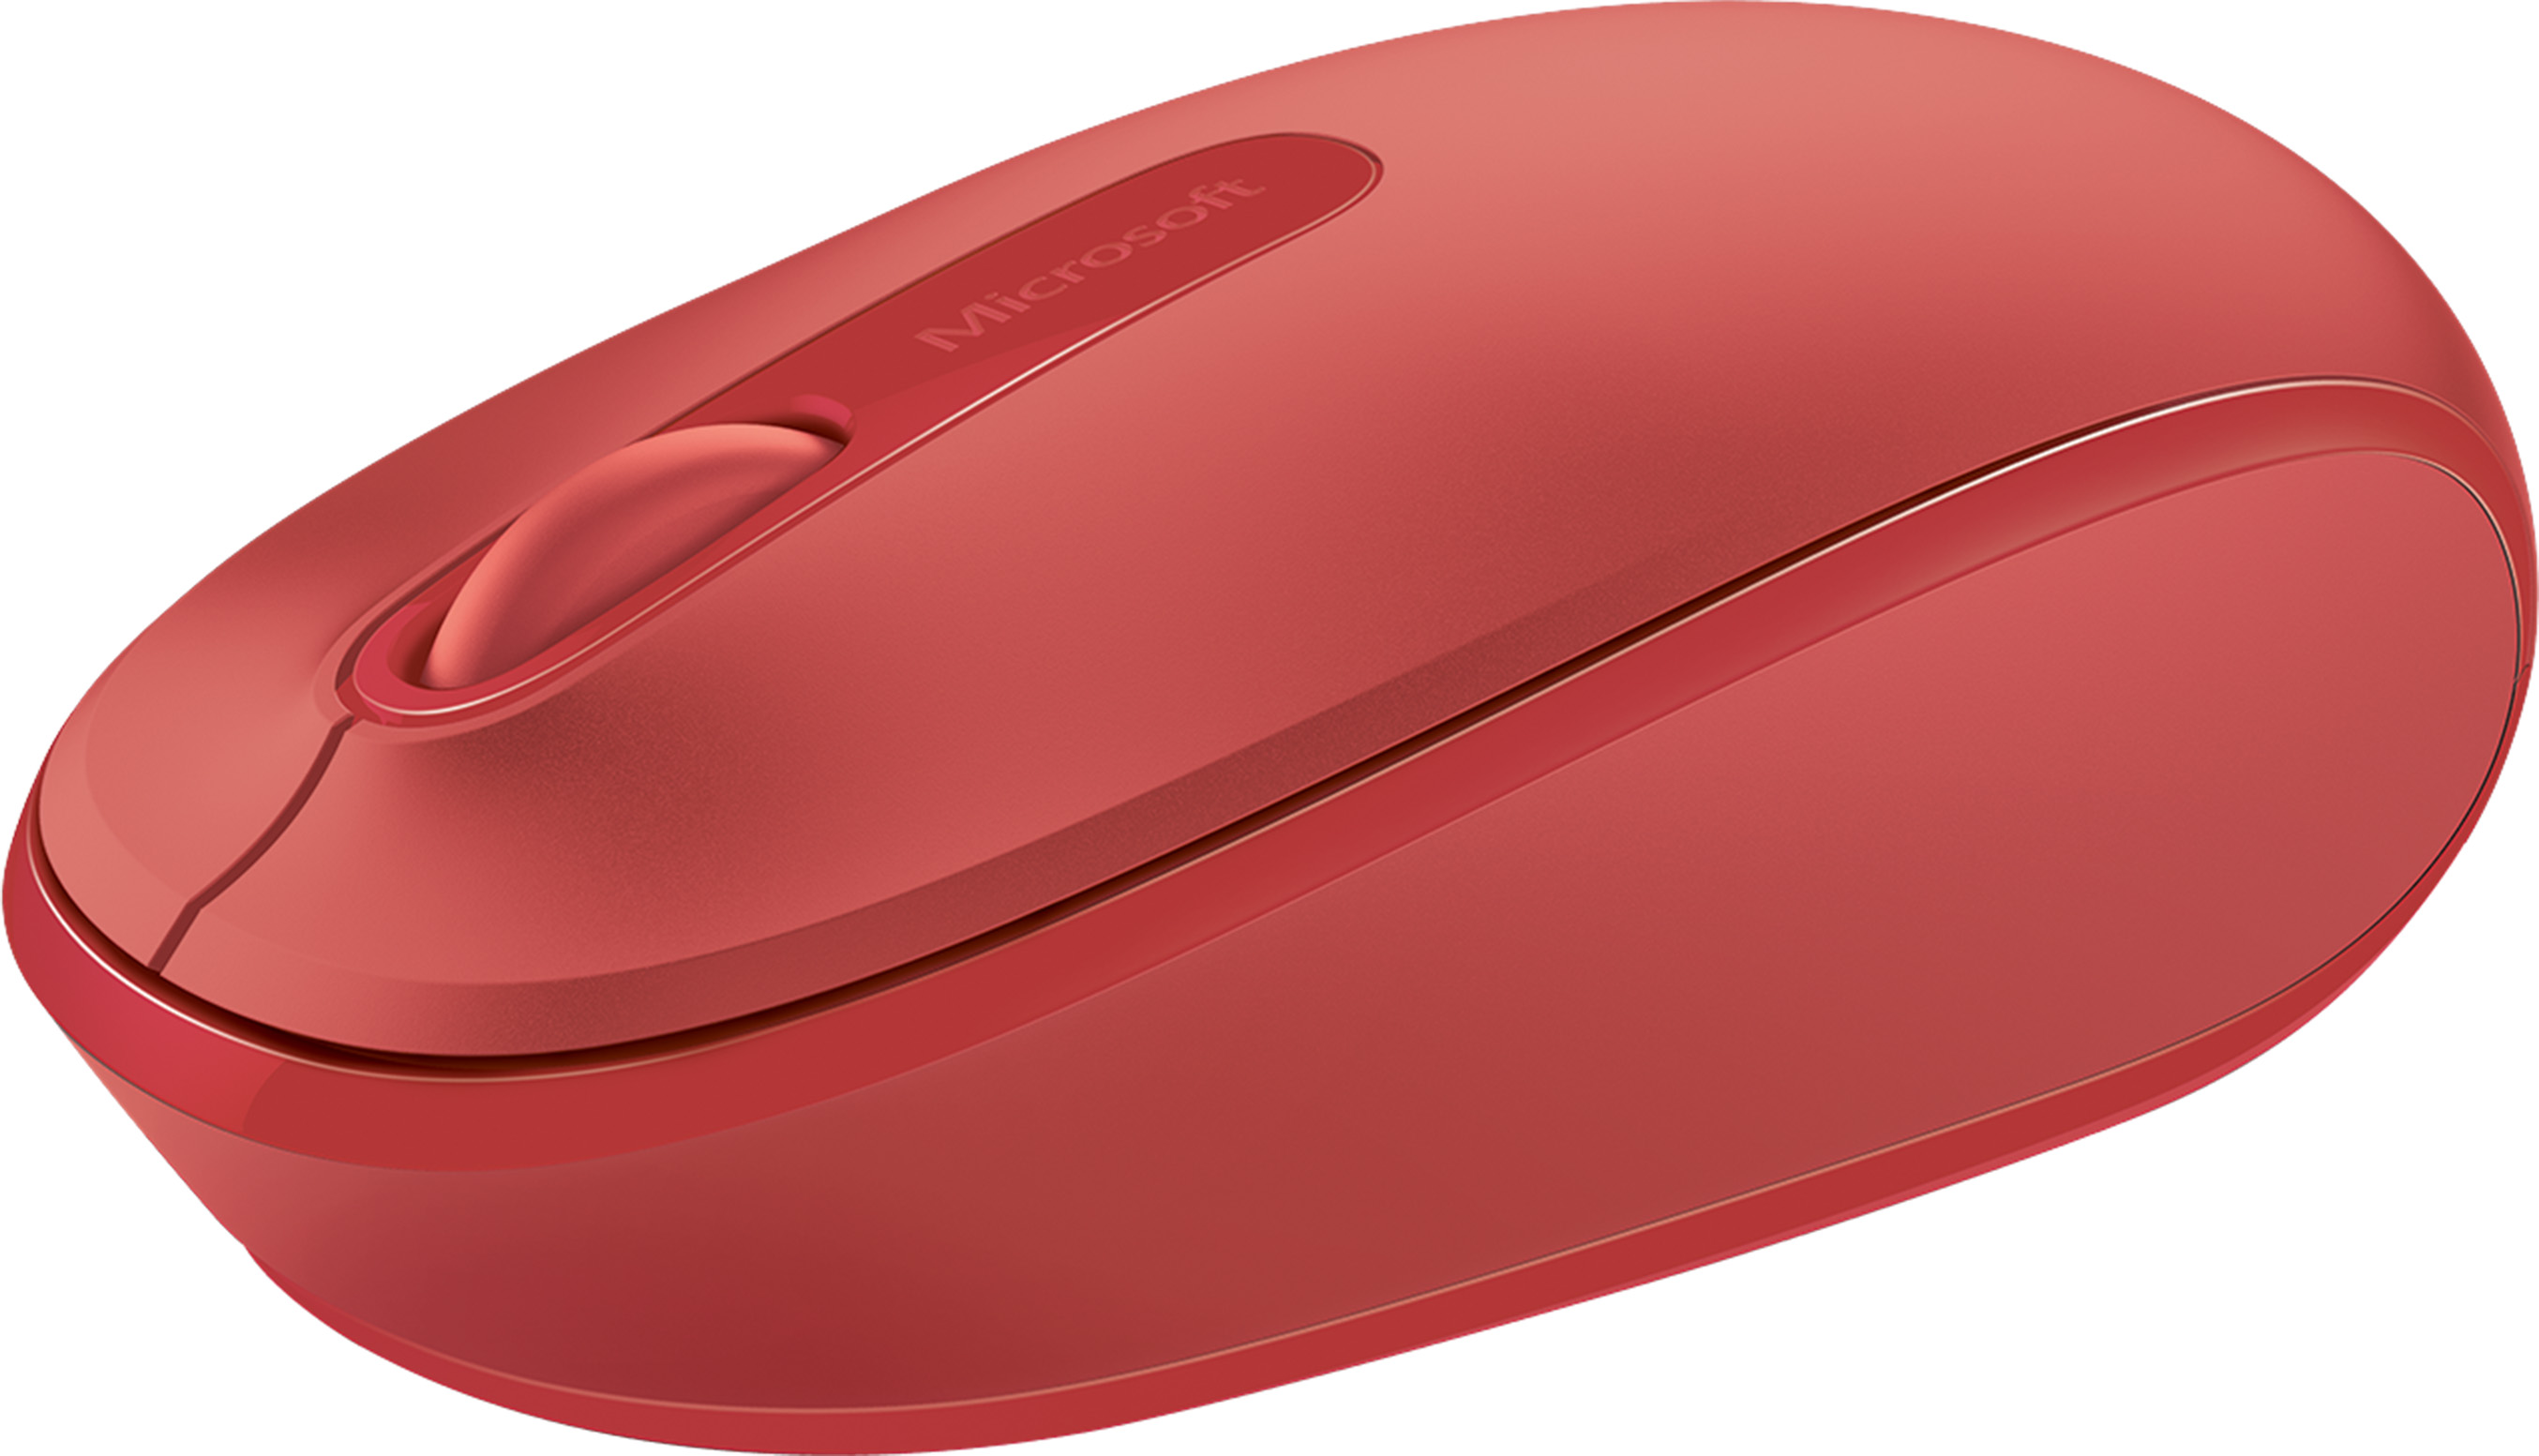 Microsoft Wireless Mobile Mouse 1850 (Flame Red)